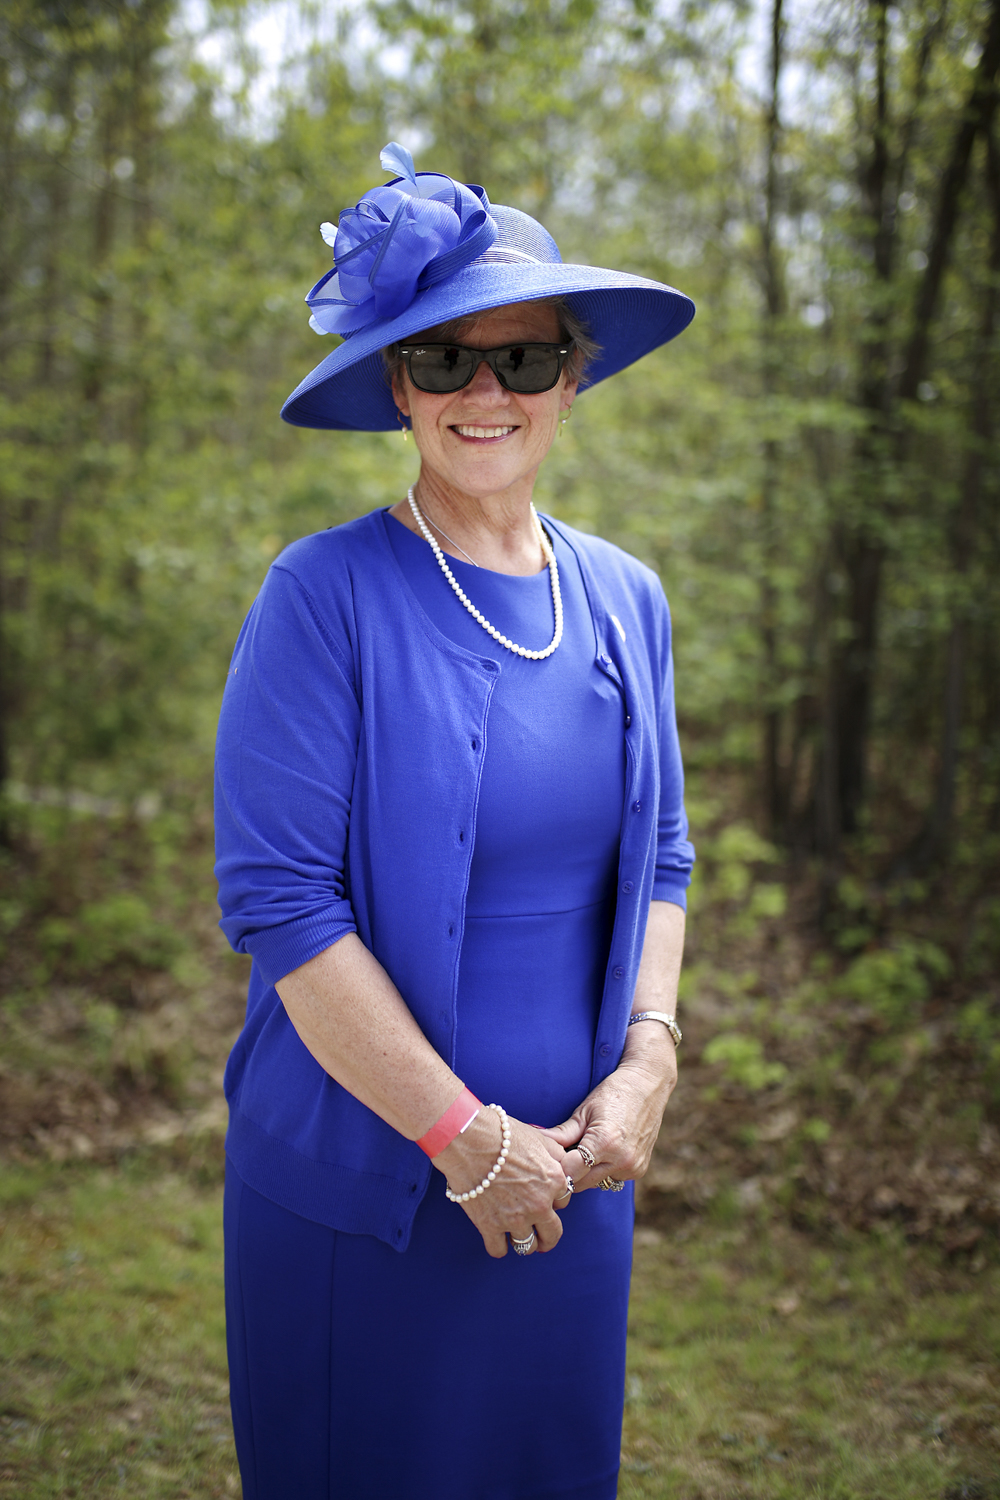 """Janet Taylor, of Chesterfield, sports a fashionable blue ensemble at The Shad, Grapes and Grains Festival. The Festival raised money for """"the good citizens of Wakefield, Virginia, and the surrounding rural area,"""" according to a statement by the organizers, at the Wakefield Ruritan Club on Friday, April 21, 2017. [Scott P. Yates/progress-index.com]"""